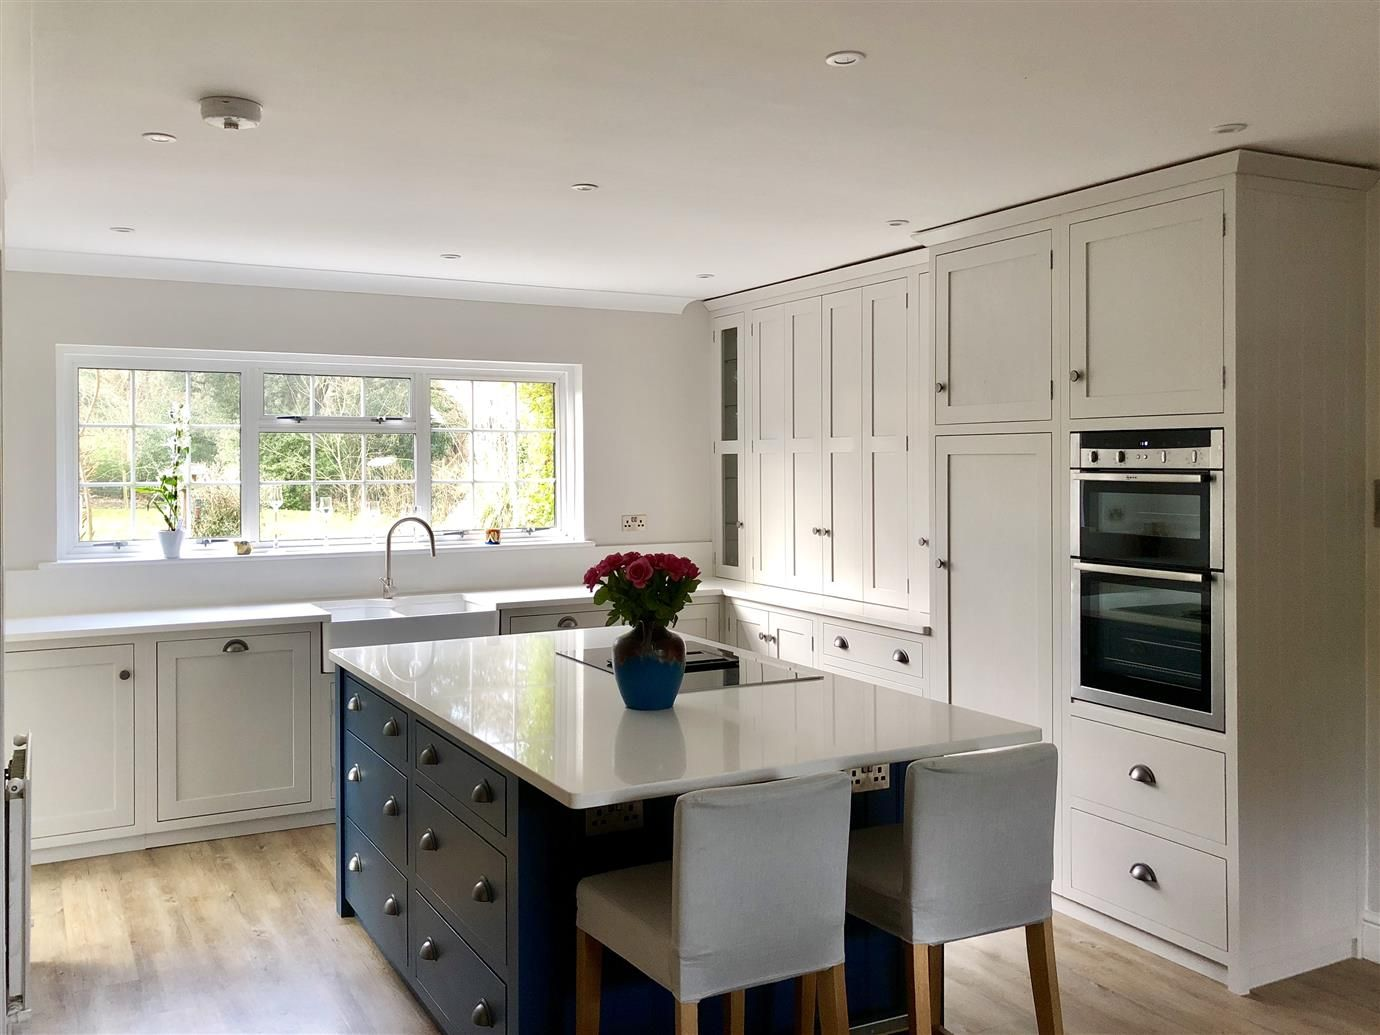 Best Inspiration From Farrow Ball White Kitchen Decor 640 x 480